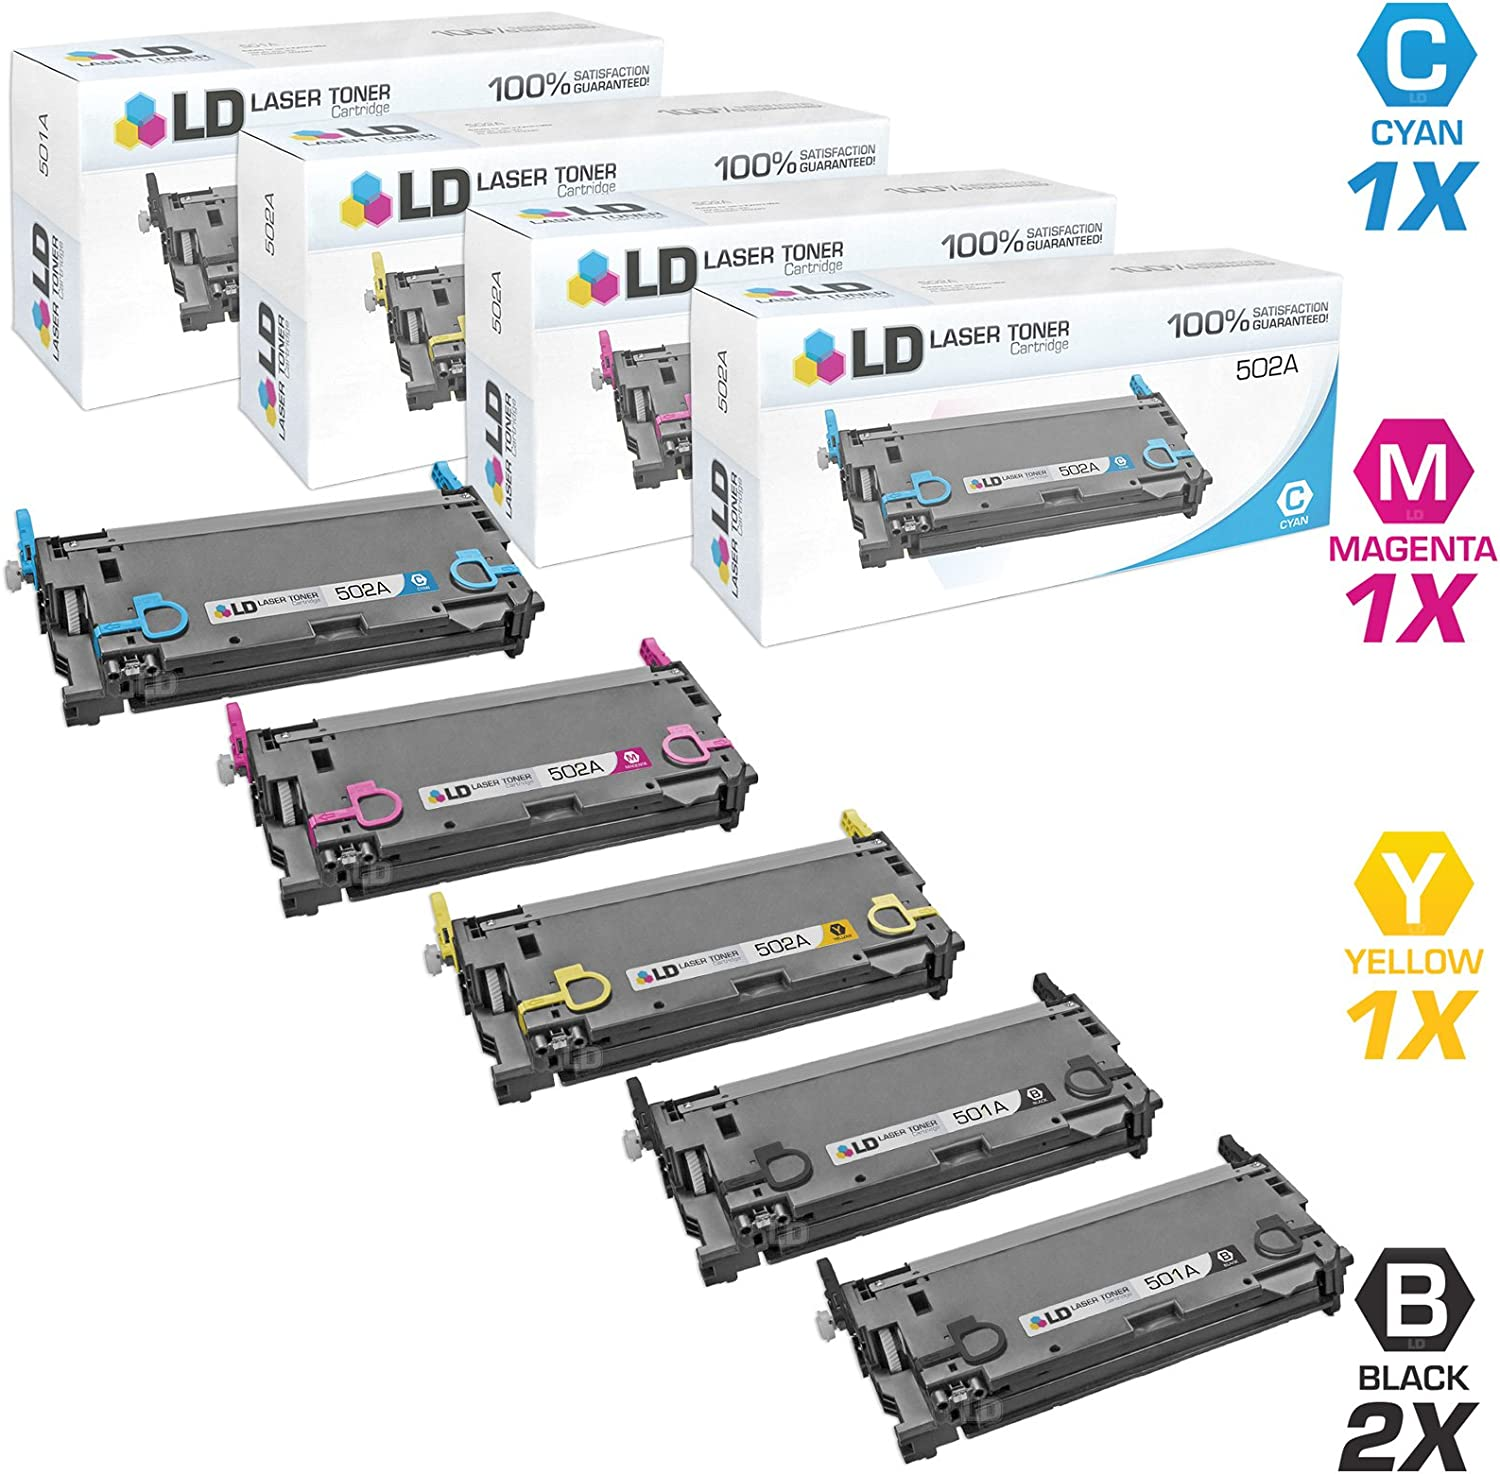 LD Remanufactured Toner Cartridge Replacement for HP 501A & HP 502A (2 Black, 1 Cyan, 1 Magenta, 1 Yellow, 5-Pack)